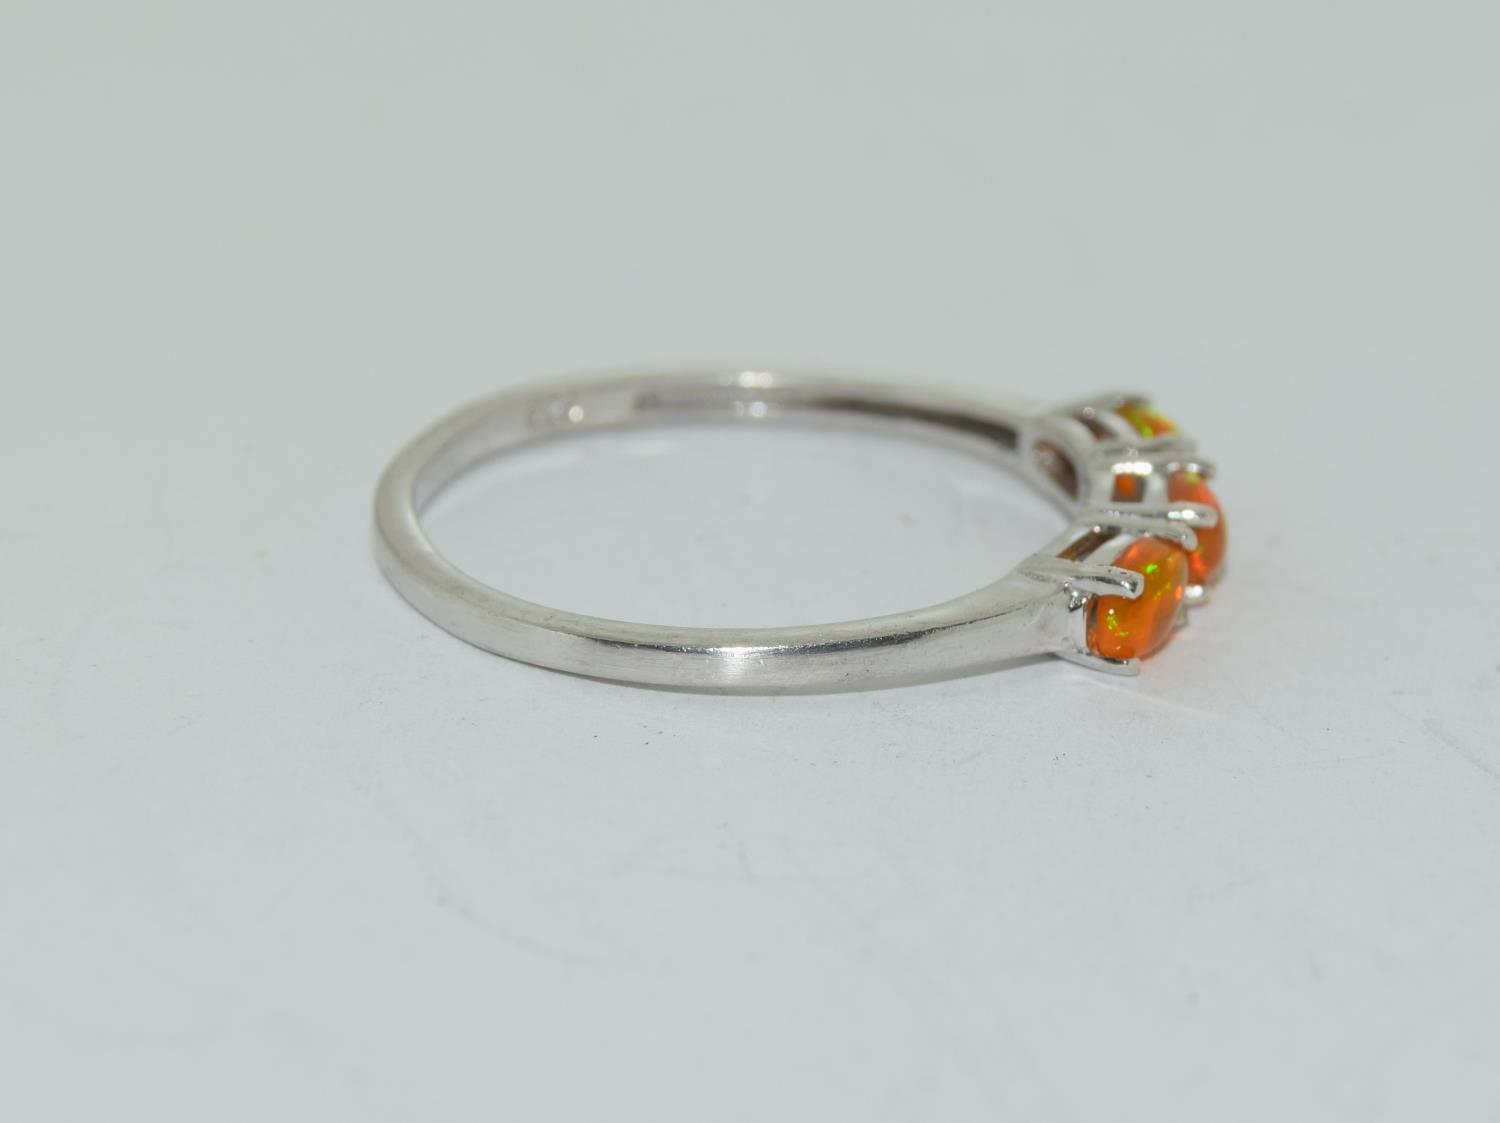 Ethiopian fire opal 925 silver ring, size S 1/2. - Image 2 of 3